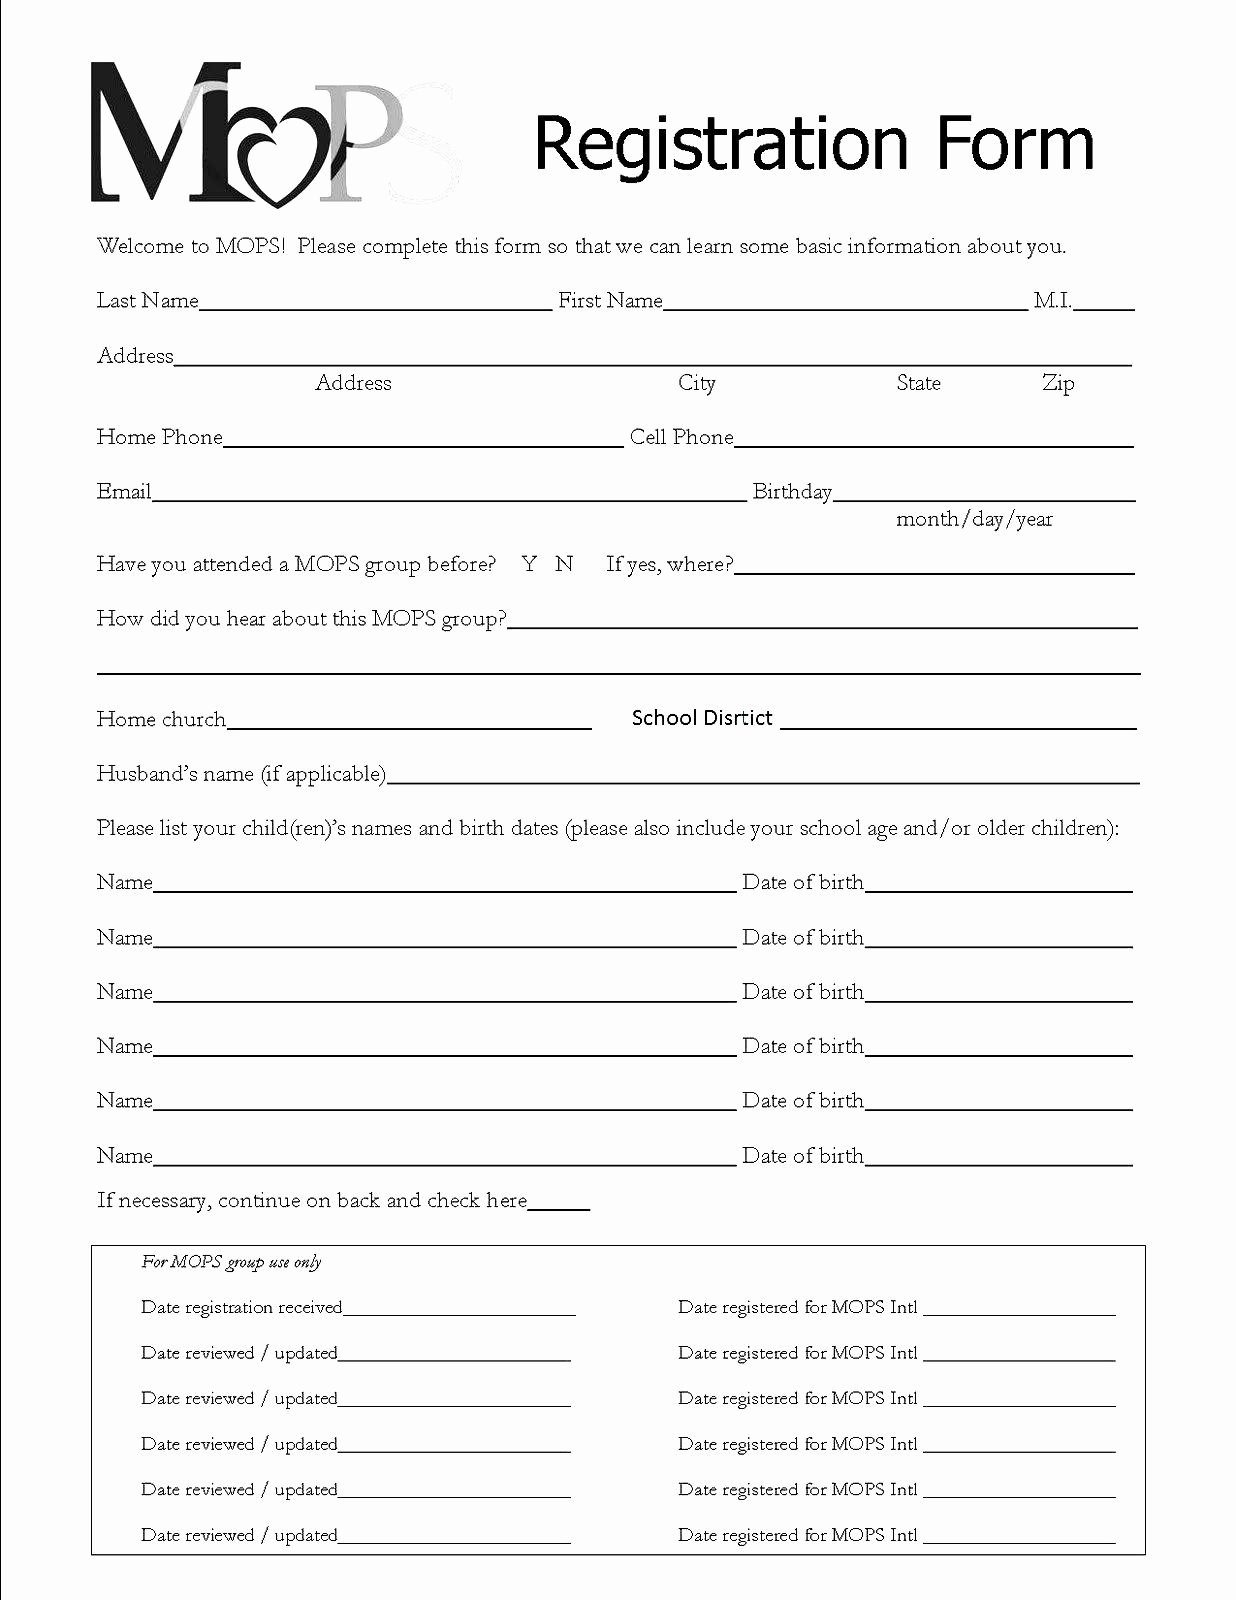 Registration form Template Word Elegant Registration forms Template Free